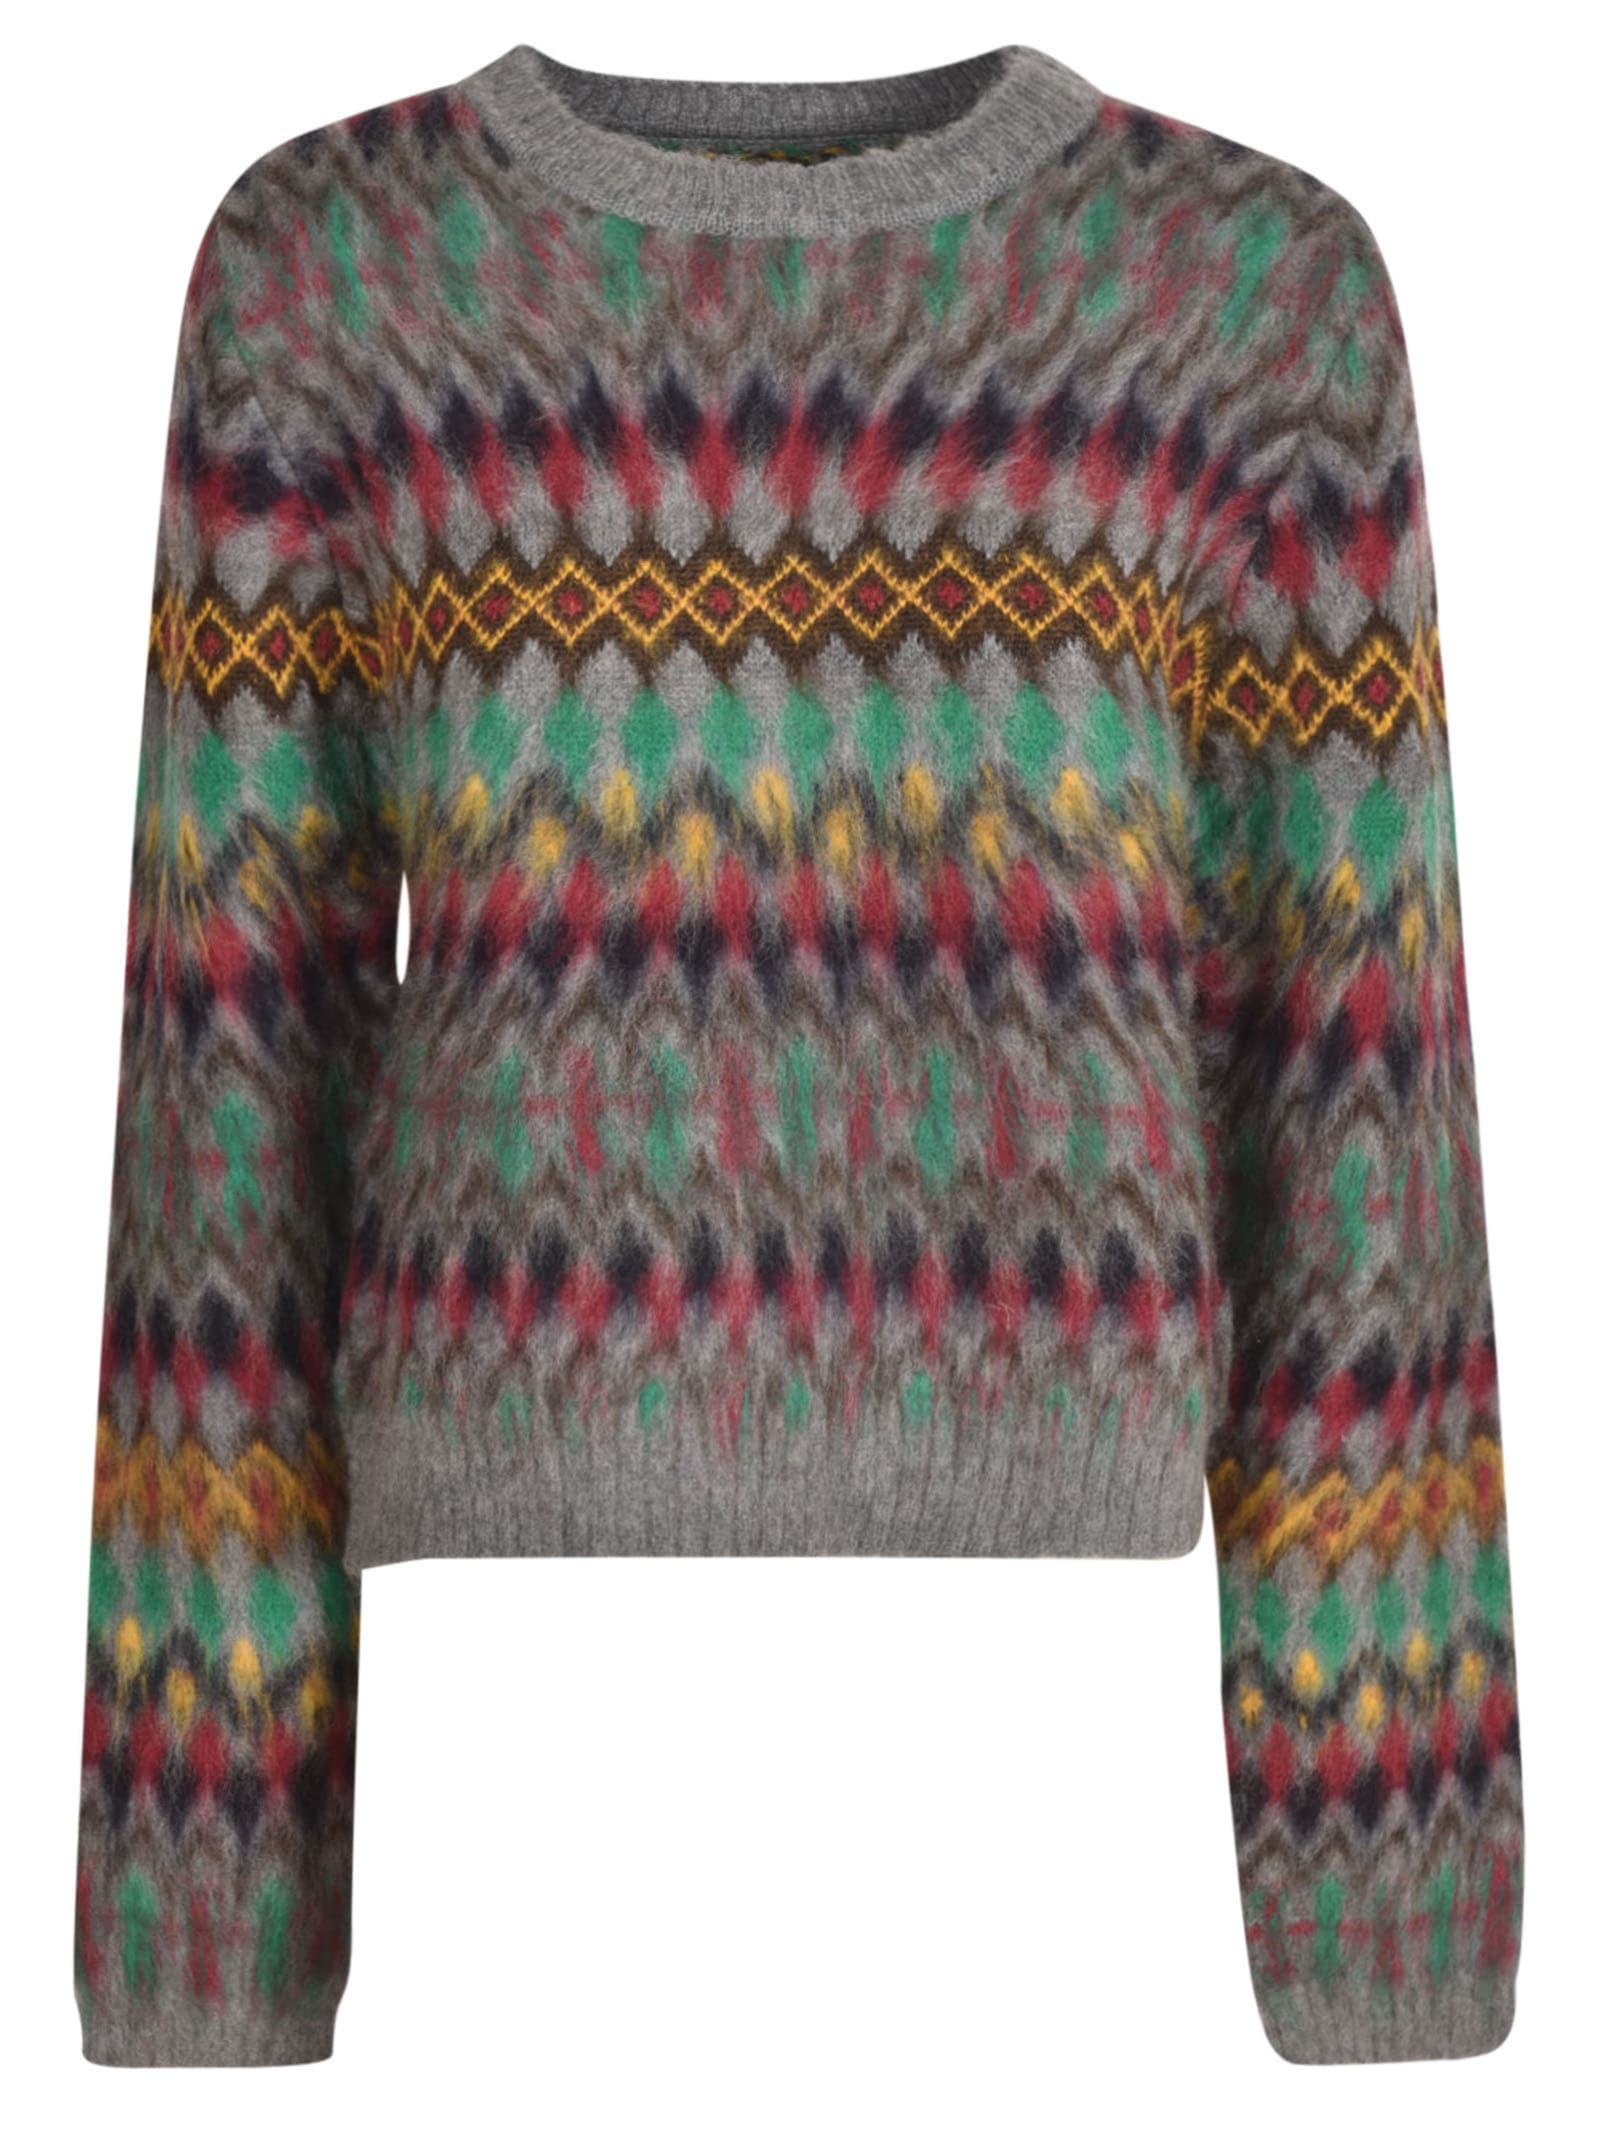 Maison Margiela Knitted Cardigan In Grey/multicolor